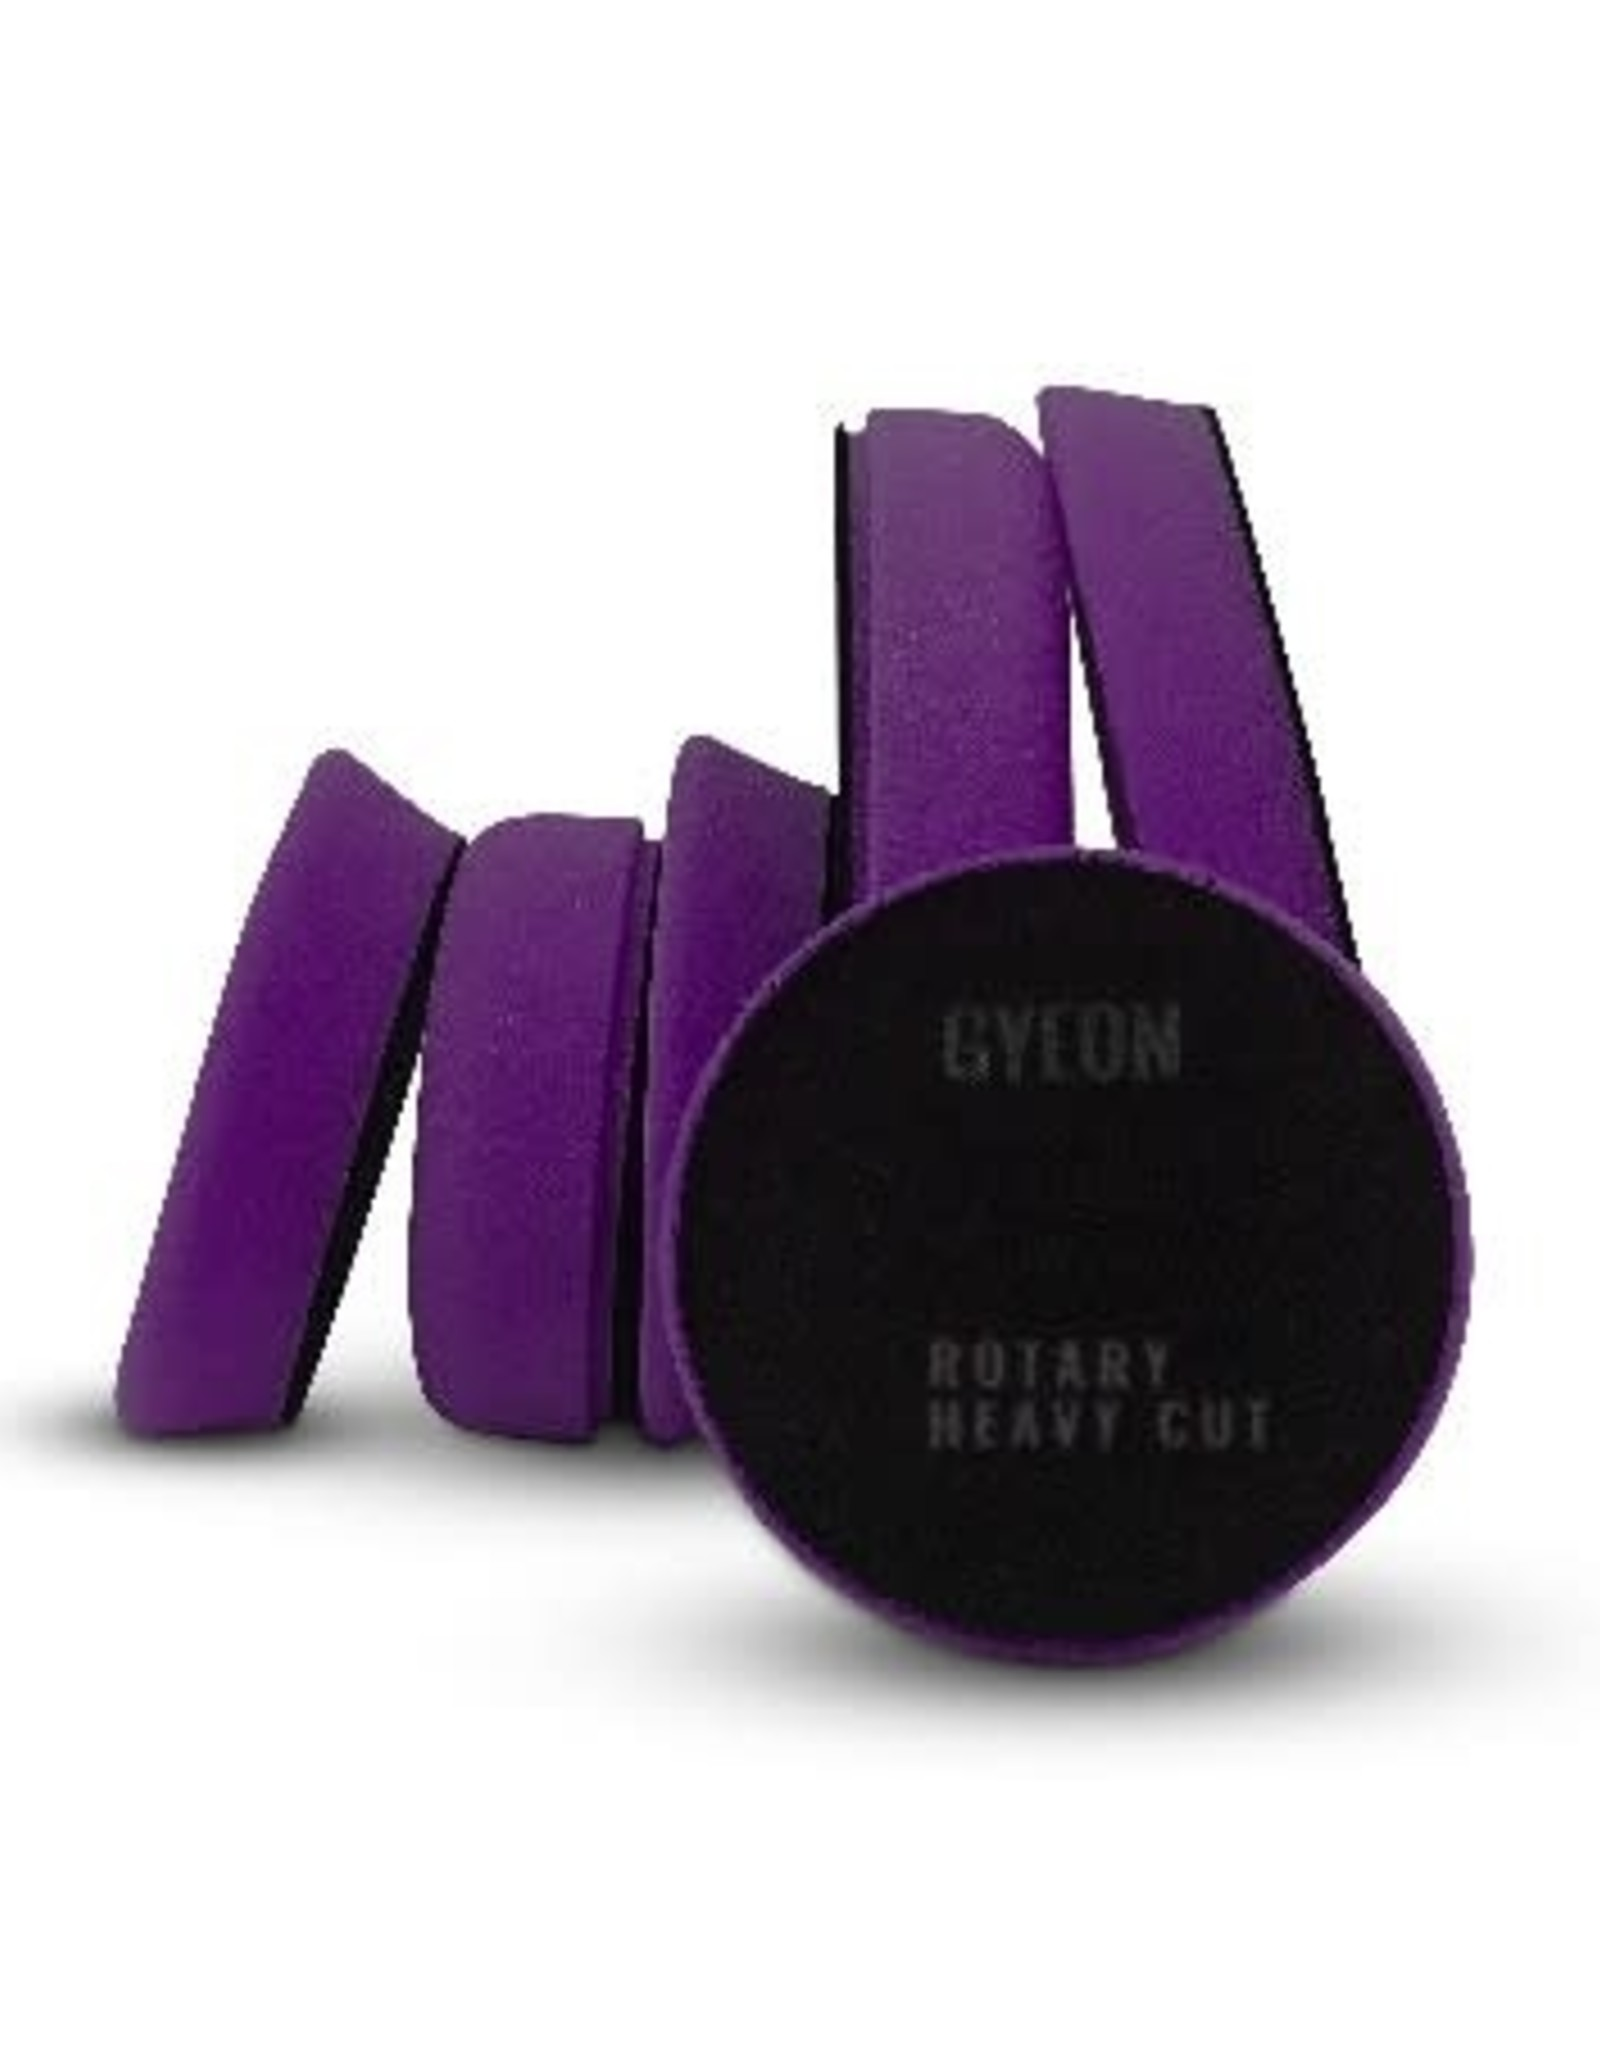 Gyeon Q²M Rotary Heavy Cut 2-pack 80mm x 25mm